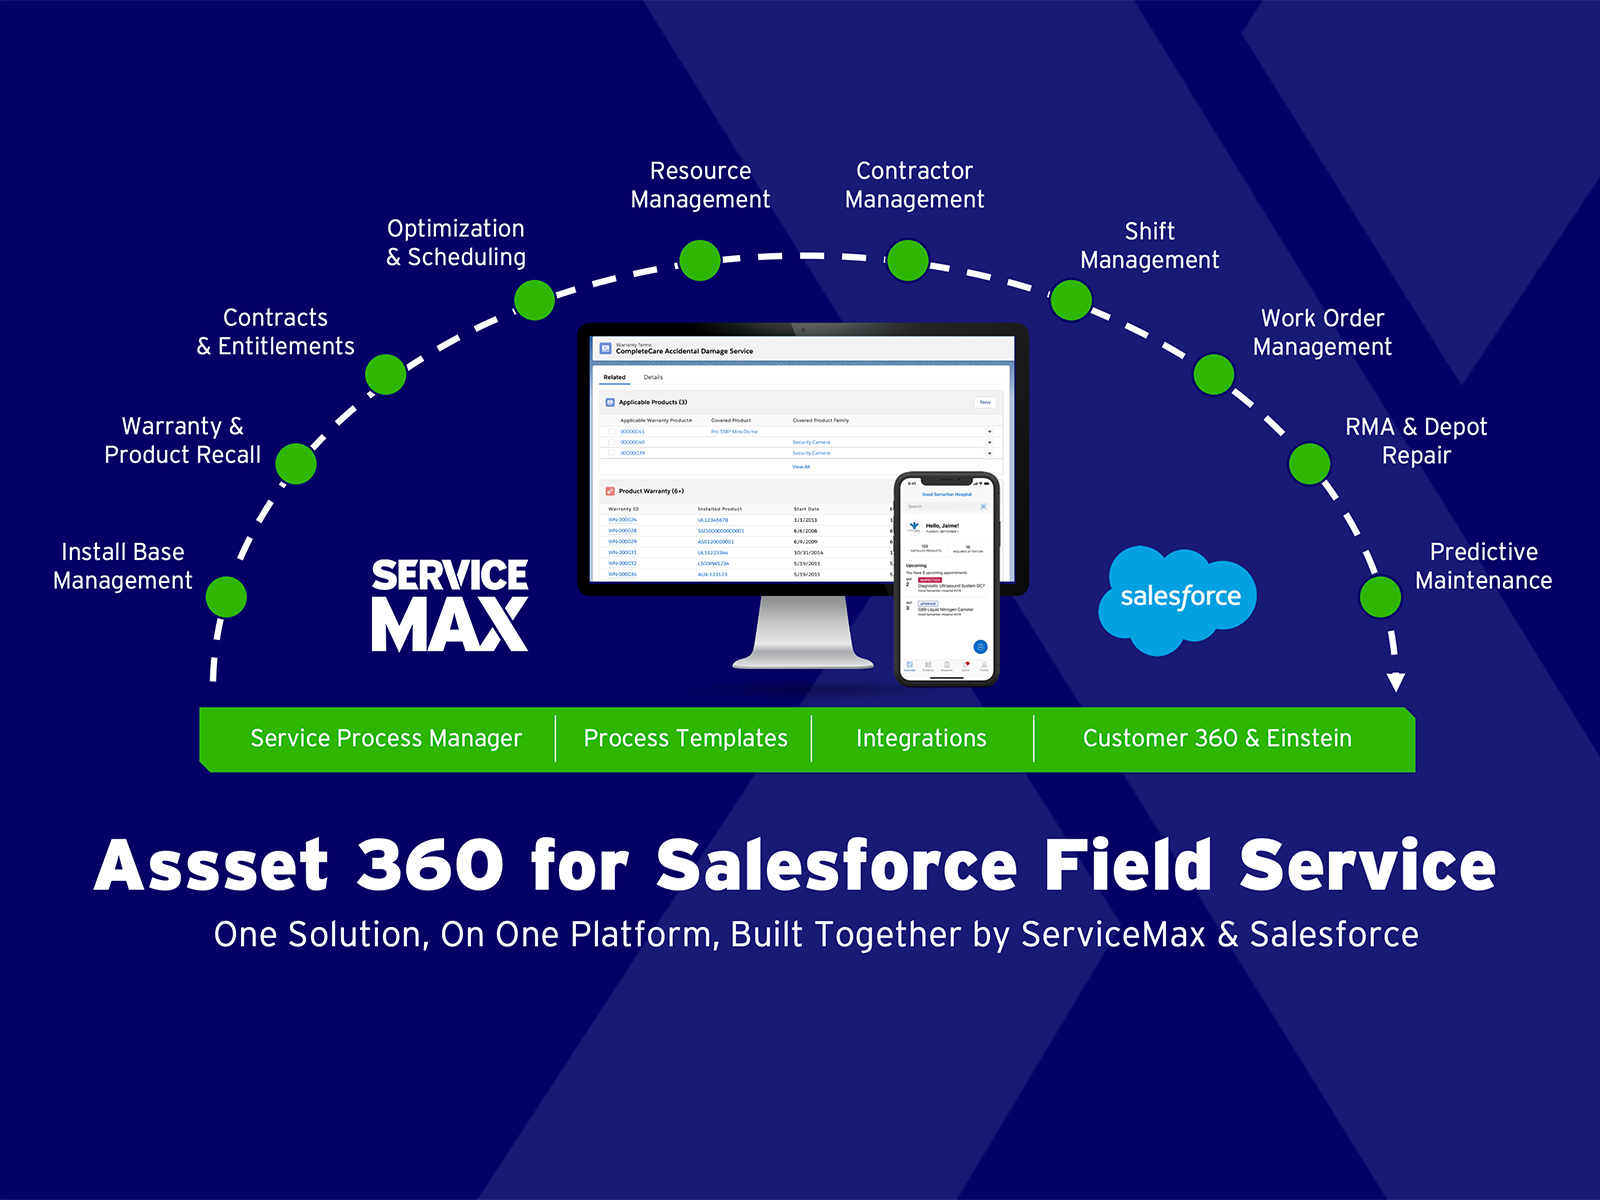 ServiceMax Software - ServiceMax and Salesforce have joined forces to deliver an unparalleled solution that drives operational efficiency with a 360-degree view of assets on the world's #1 CRM platform.